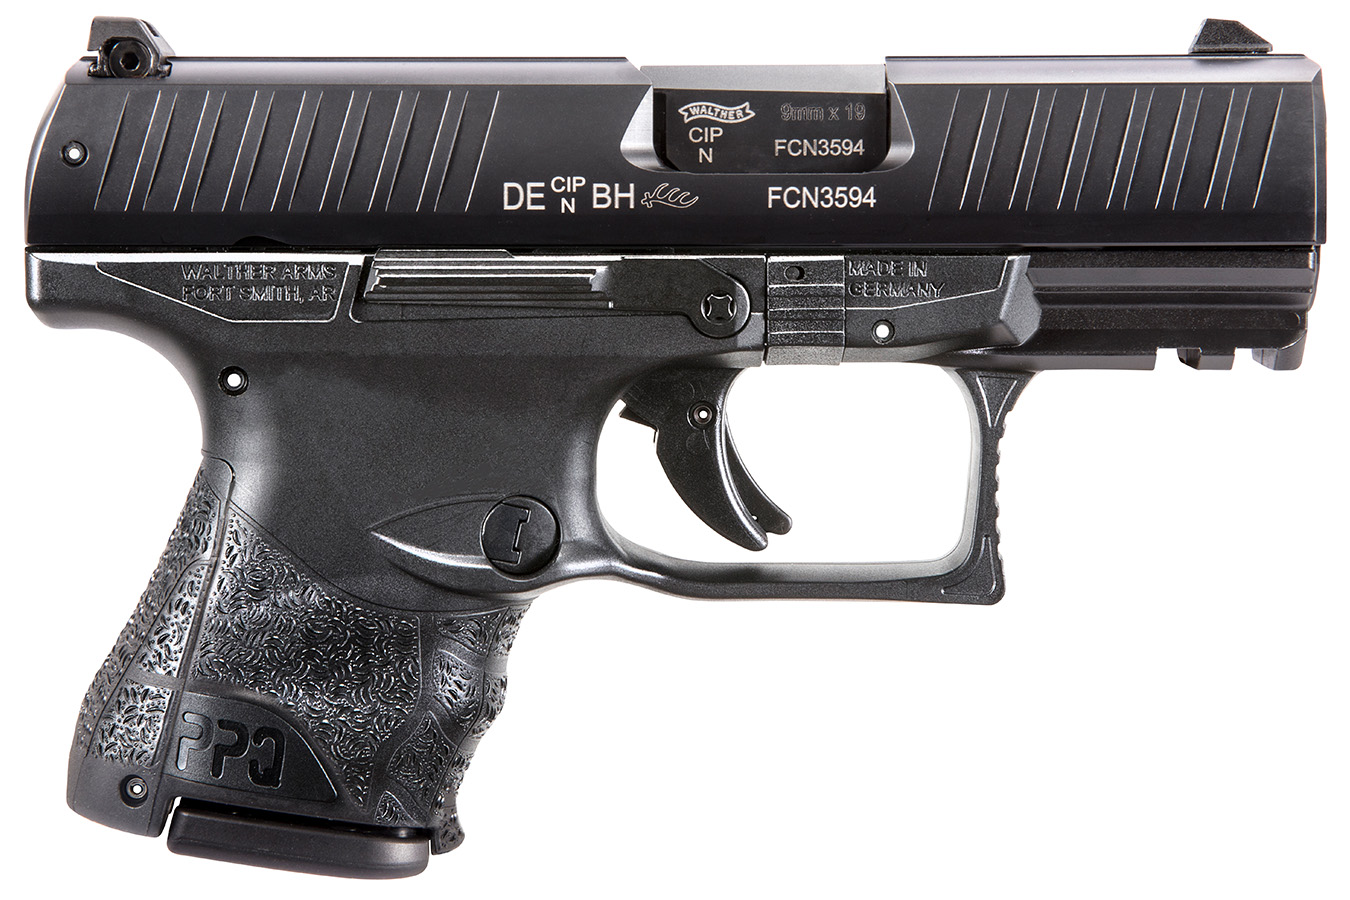 PPQ M2 9mm Sub-Compact LE Edition with Three Magazines and Phosphoric Night  Sights